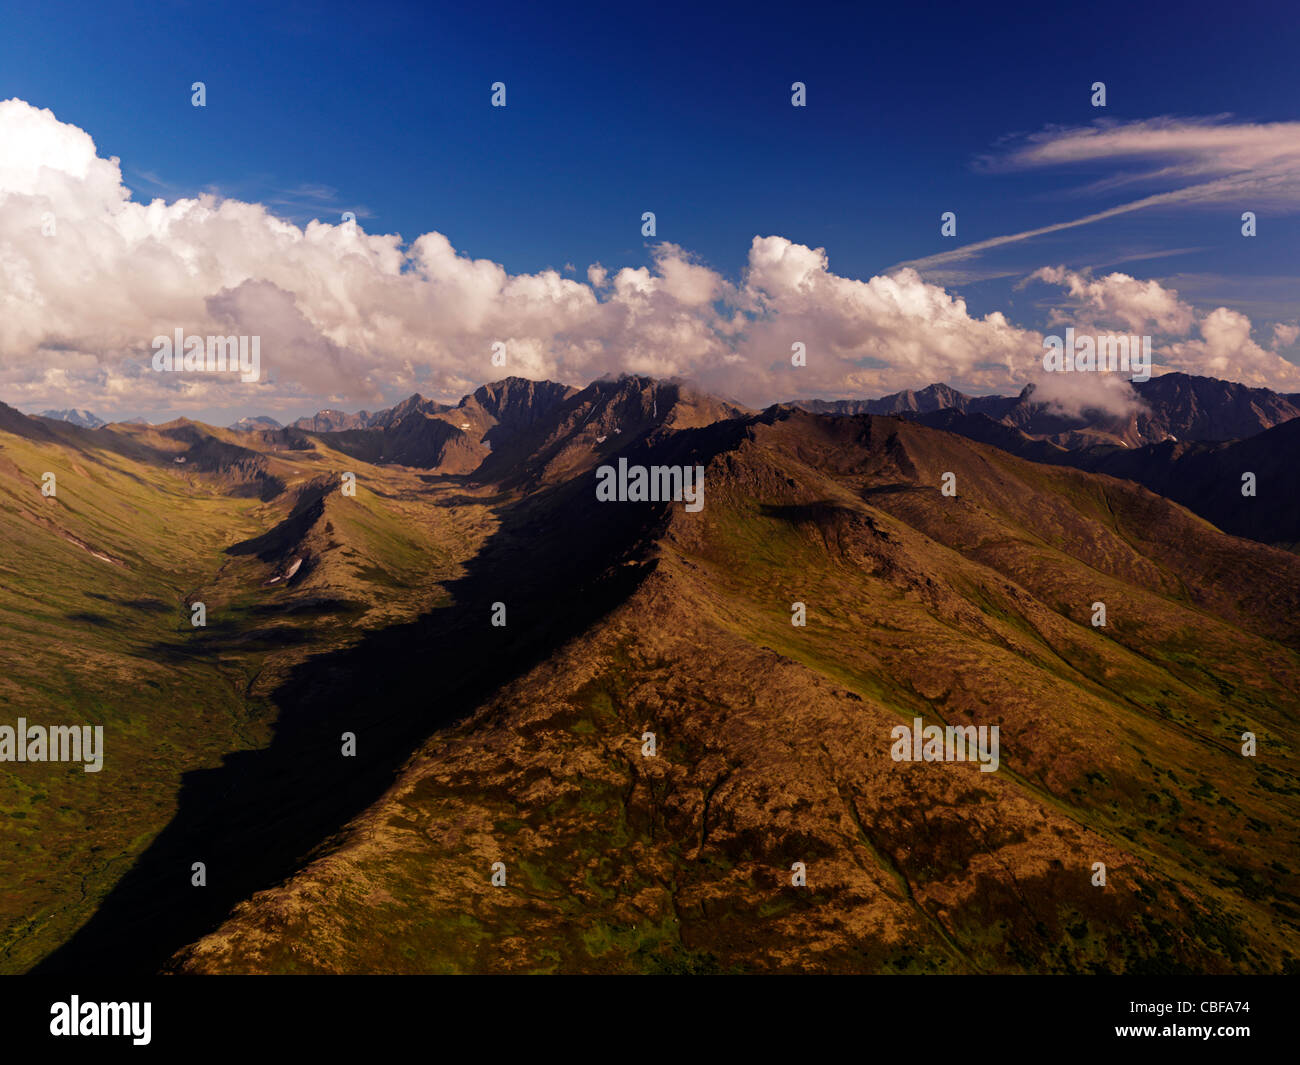 An aerial view of the Chugach Mountains, Chugach State Park, Alaska, USA - Stock Image